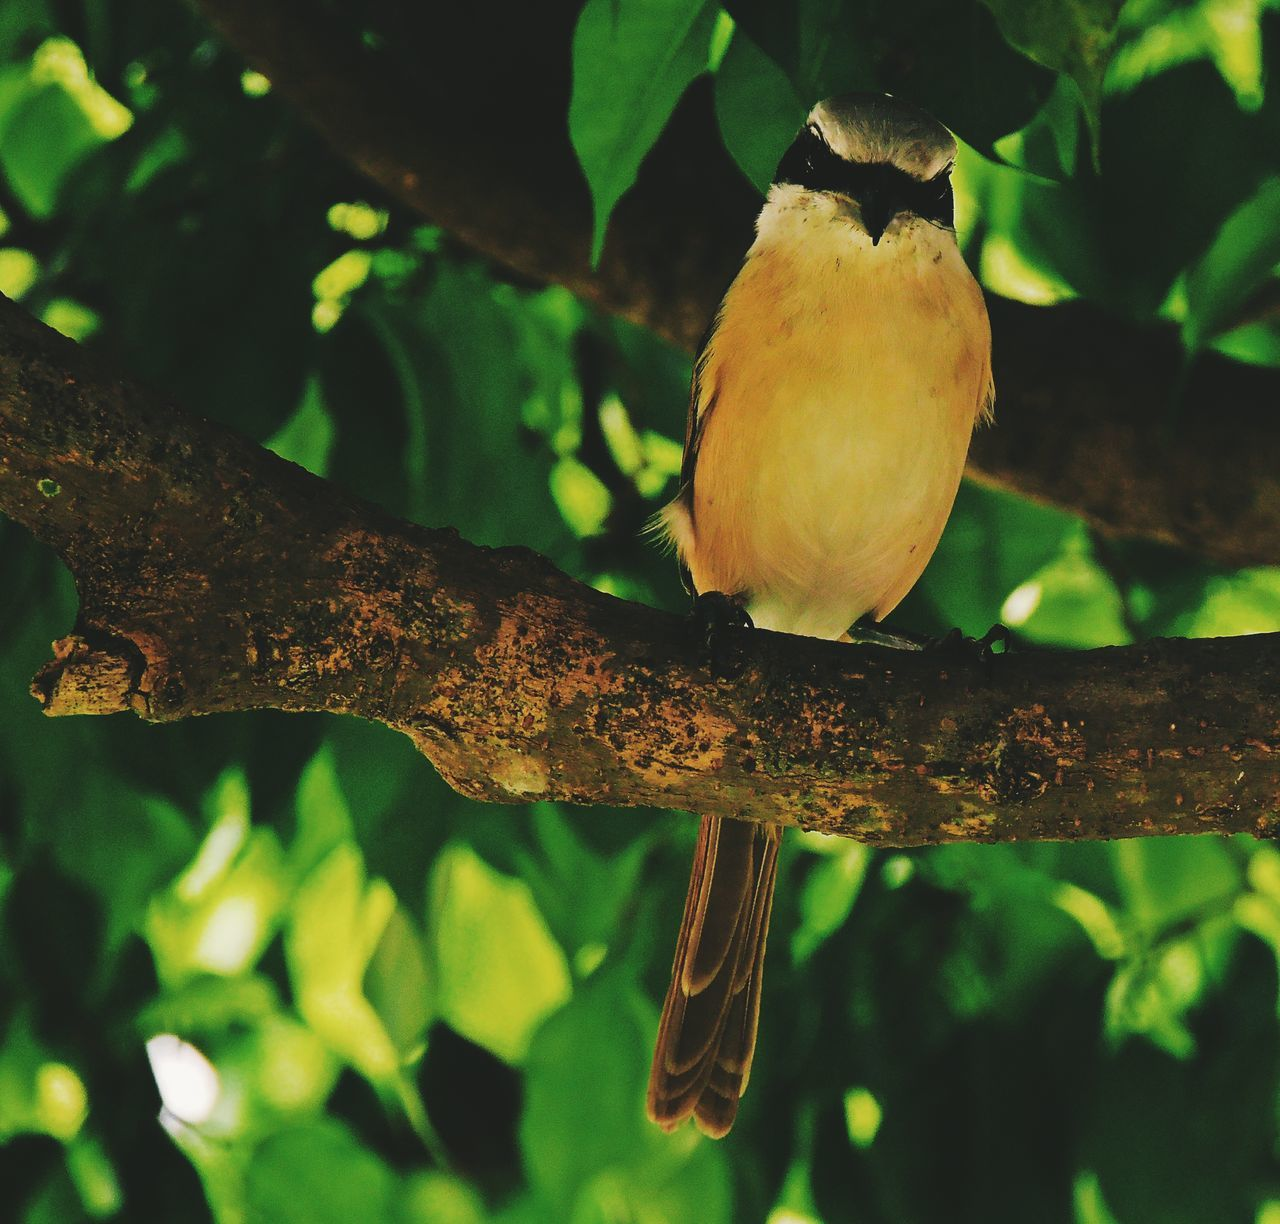 On a tree located beside the tomb rests a bird, just like souls when they finally find their piece of heaven. Global EyeEm Adventure - Philippines AllSaintsDay The Great Outdoors - 2015 EyeEm Awards